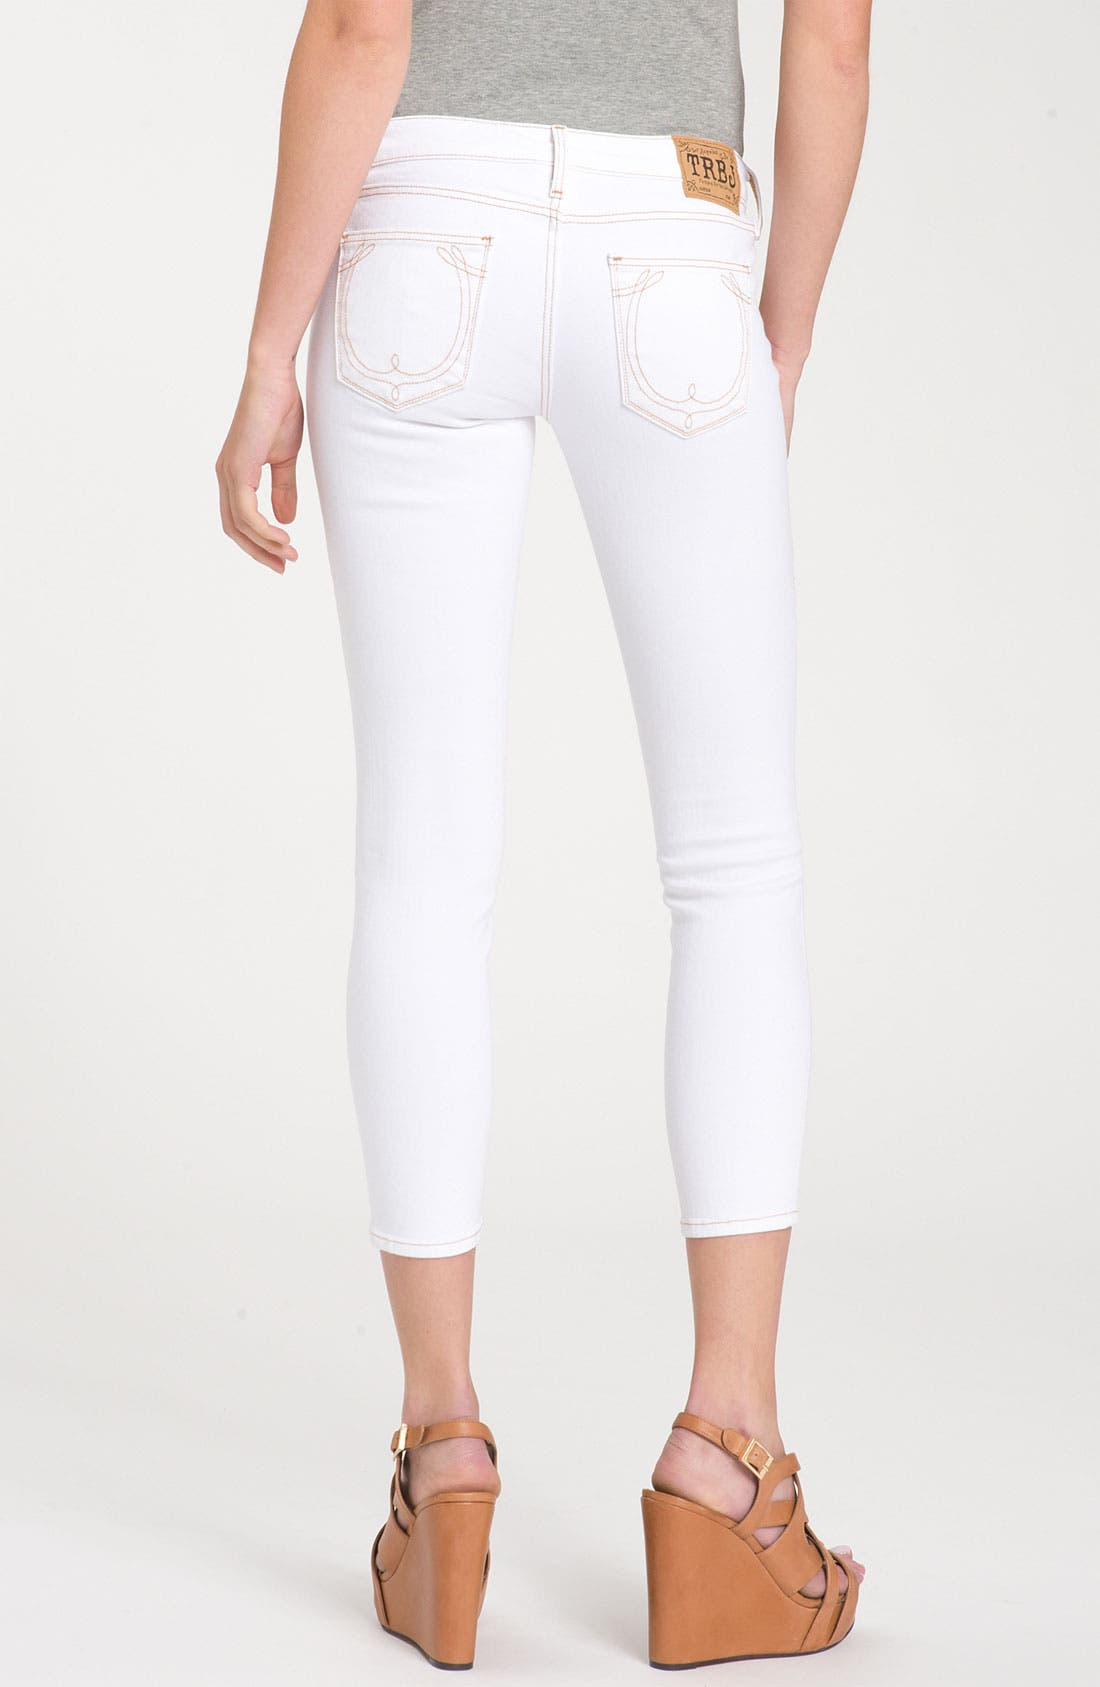 Main Image - True Religion Brand Jeans 'Brooklyn' Skinny Crop Jeans (Optic White)